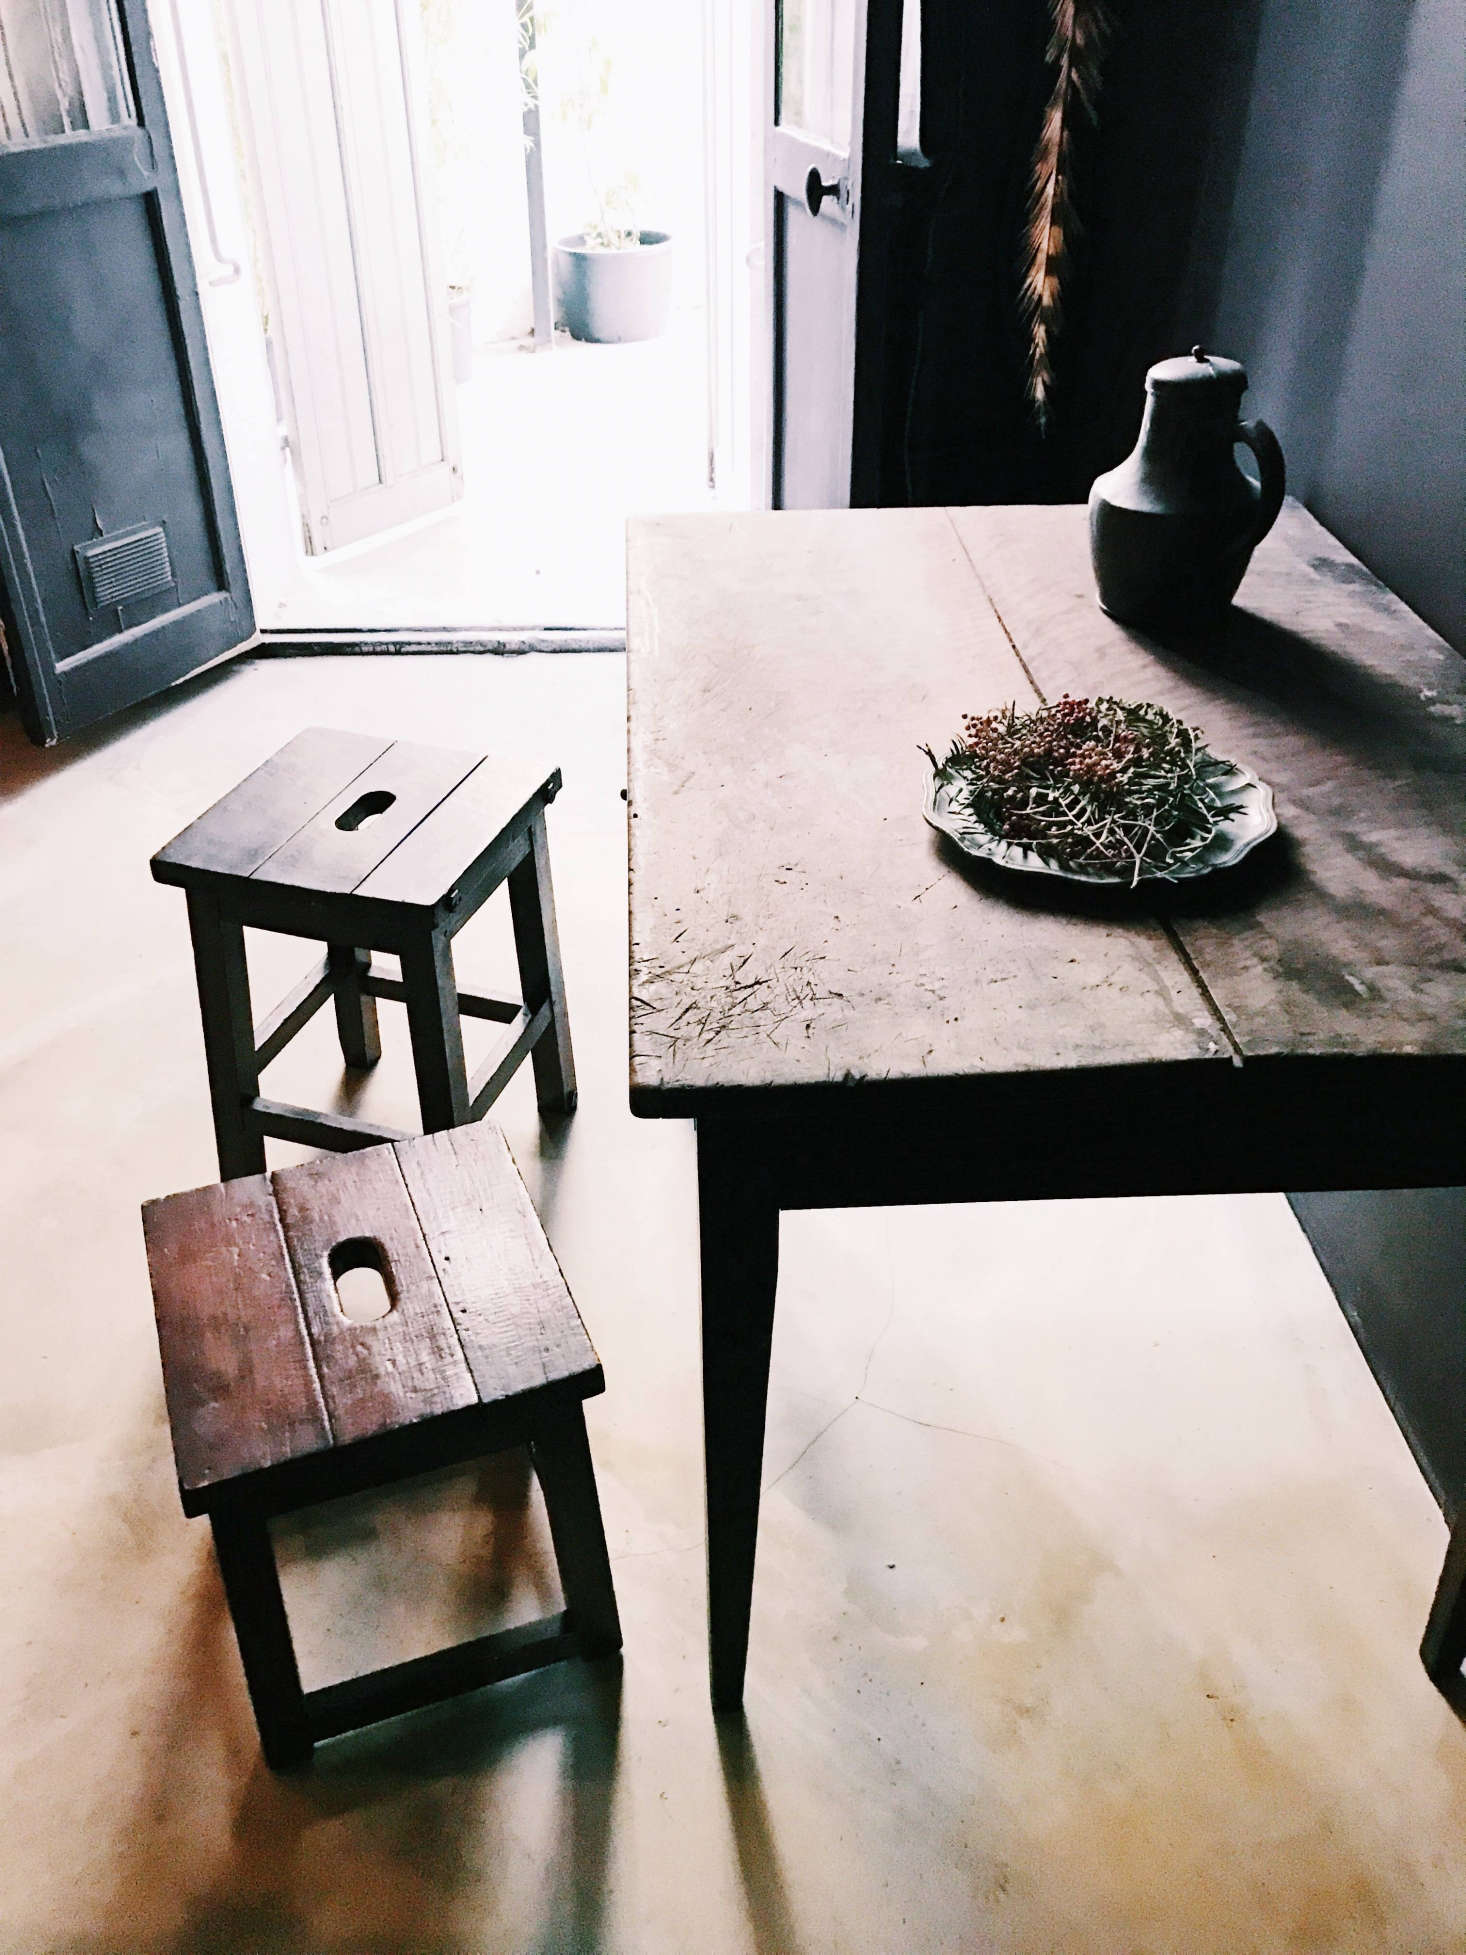 """The apartment """"smells pleasantly of linseed oil and Marseilles soap,"""" a guest writes on Airbnb."""